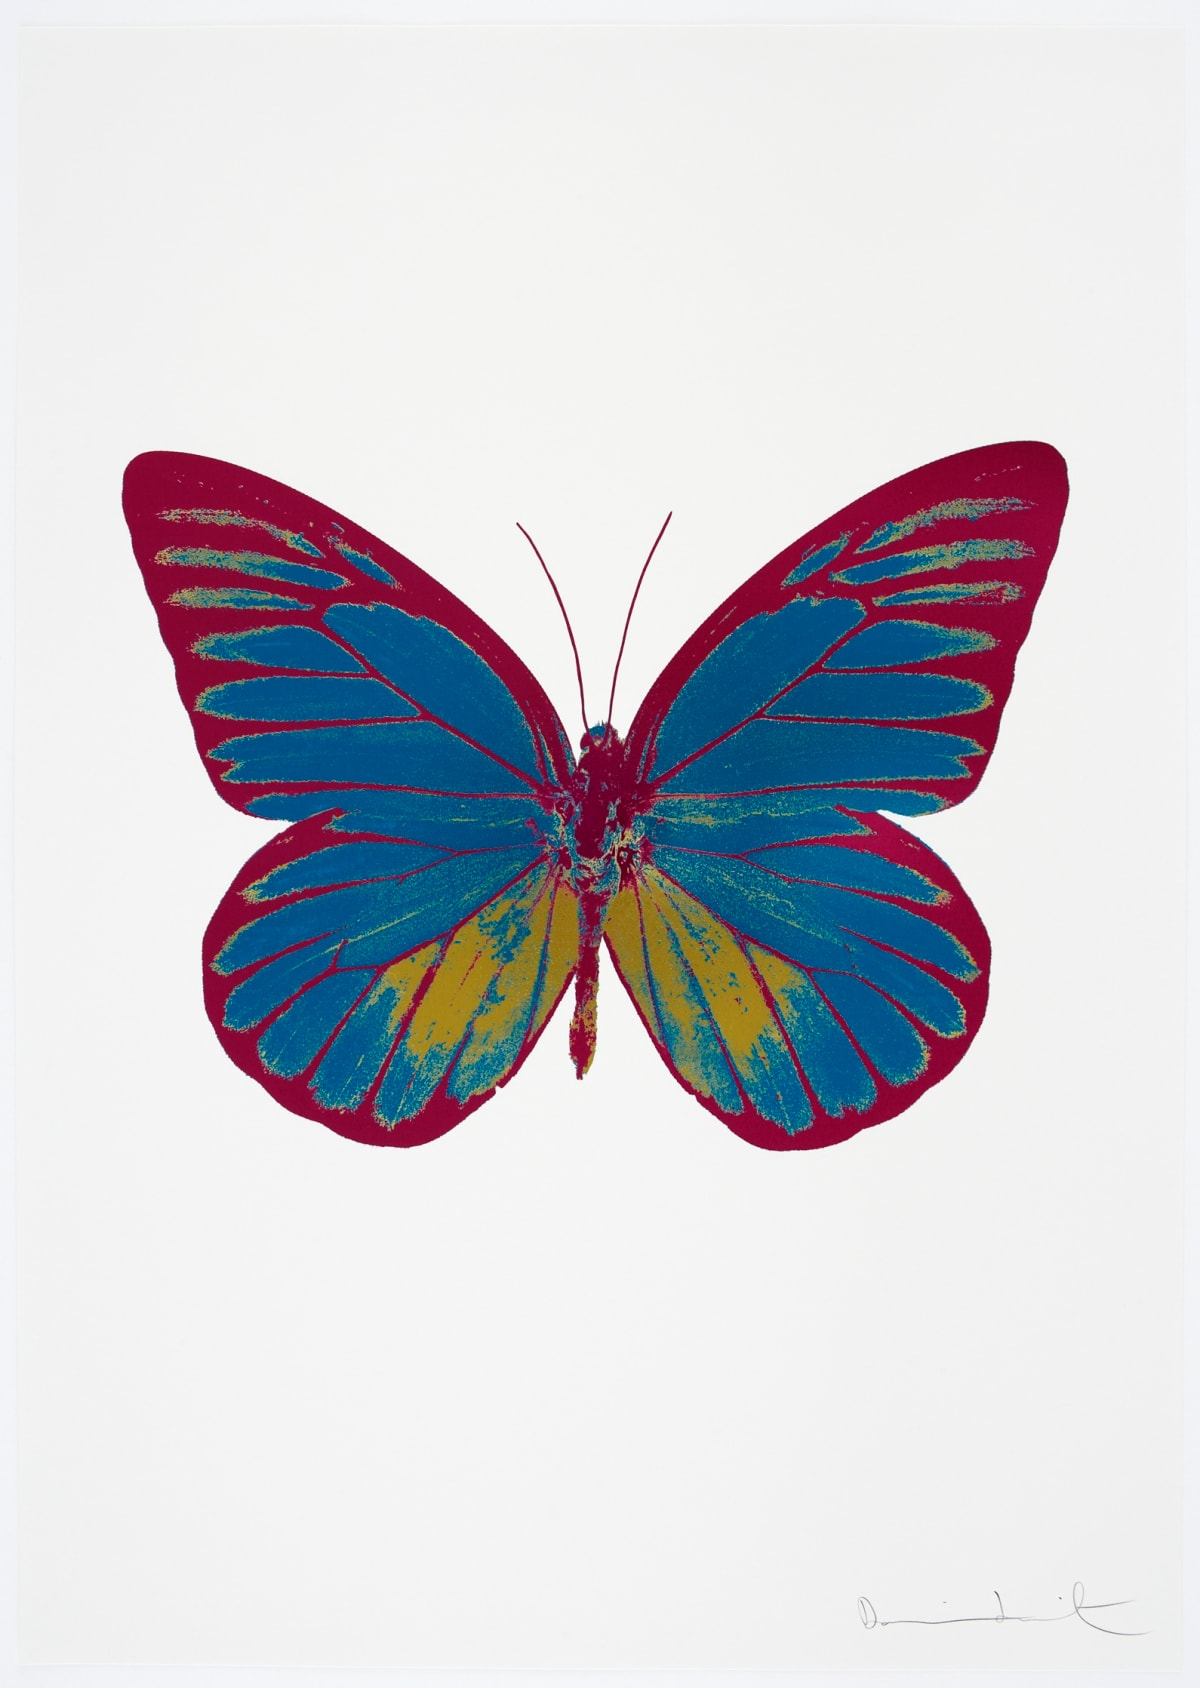 Damien Hirst The Souls I - Turquoise/Oriental Gold/Fuchsia Pink, 2010 3 colour foil block on 300gsm Arches 88 archival paper. Signed and numbered. Published by Paul Stolper and Other Criteria 72 x 51cm OC7742 / 659-5 Edition of 15